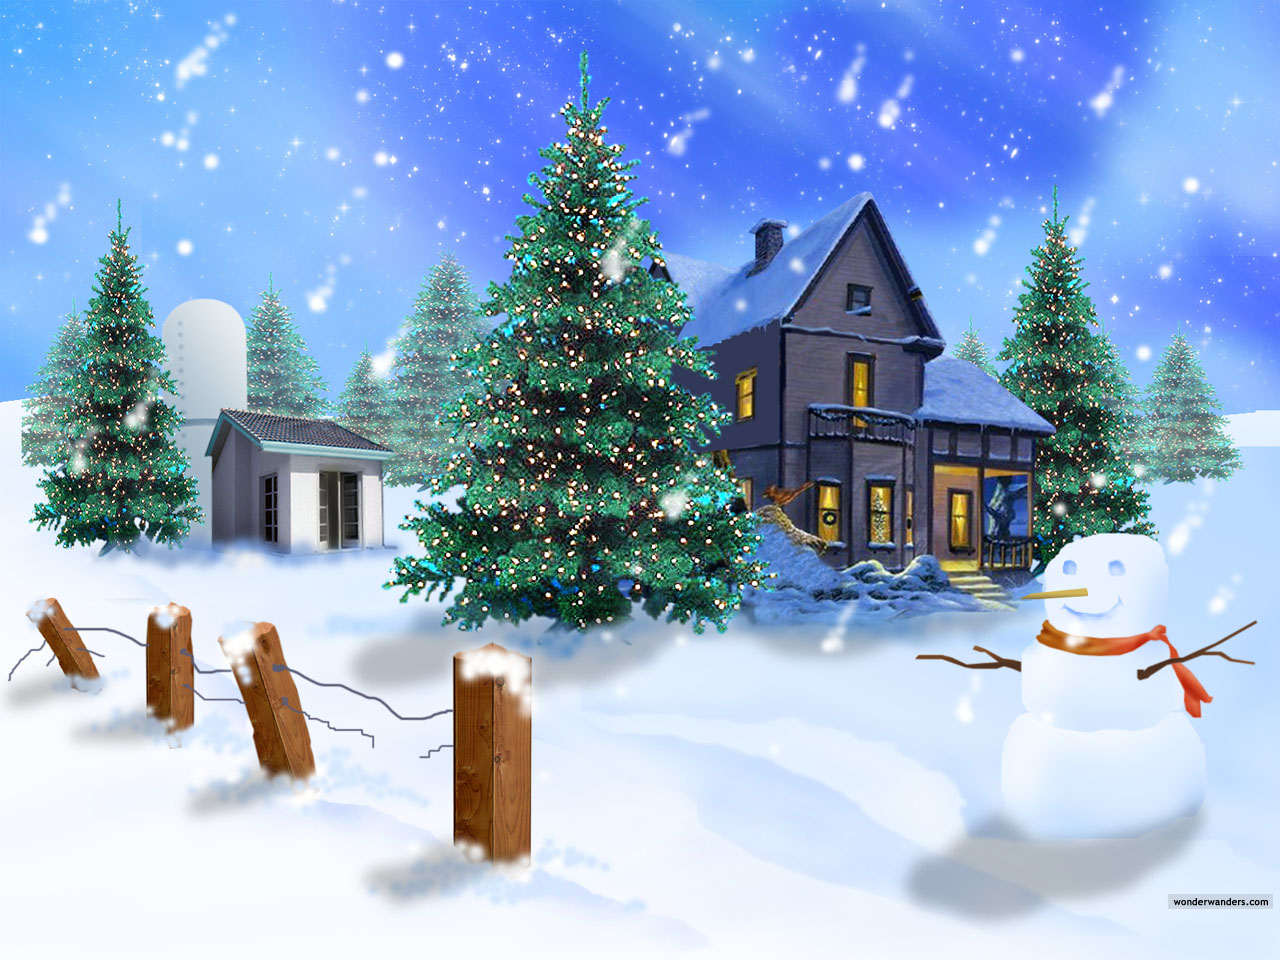 Xmas Wallpapers